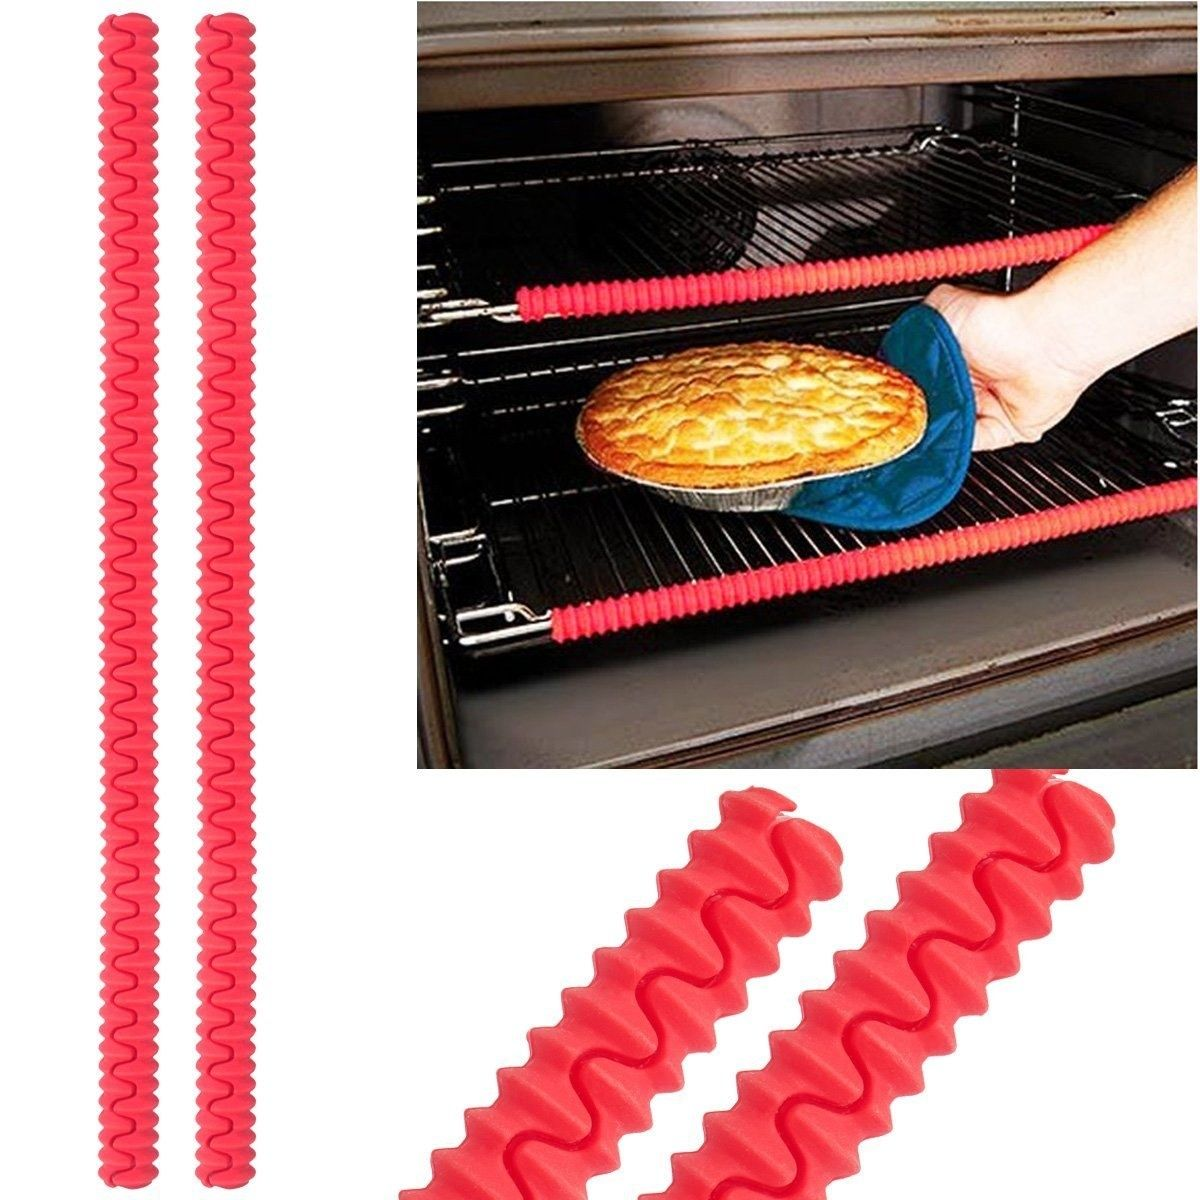 BPA Free FDA Approved Child Safety Toaster Edge Guard Shields Prevent Burns and Scars when Baking or Broiling SET OF 3 Oven Rack Protectors Heat Resistant Silicone Oven Guards Dishwasher Safe